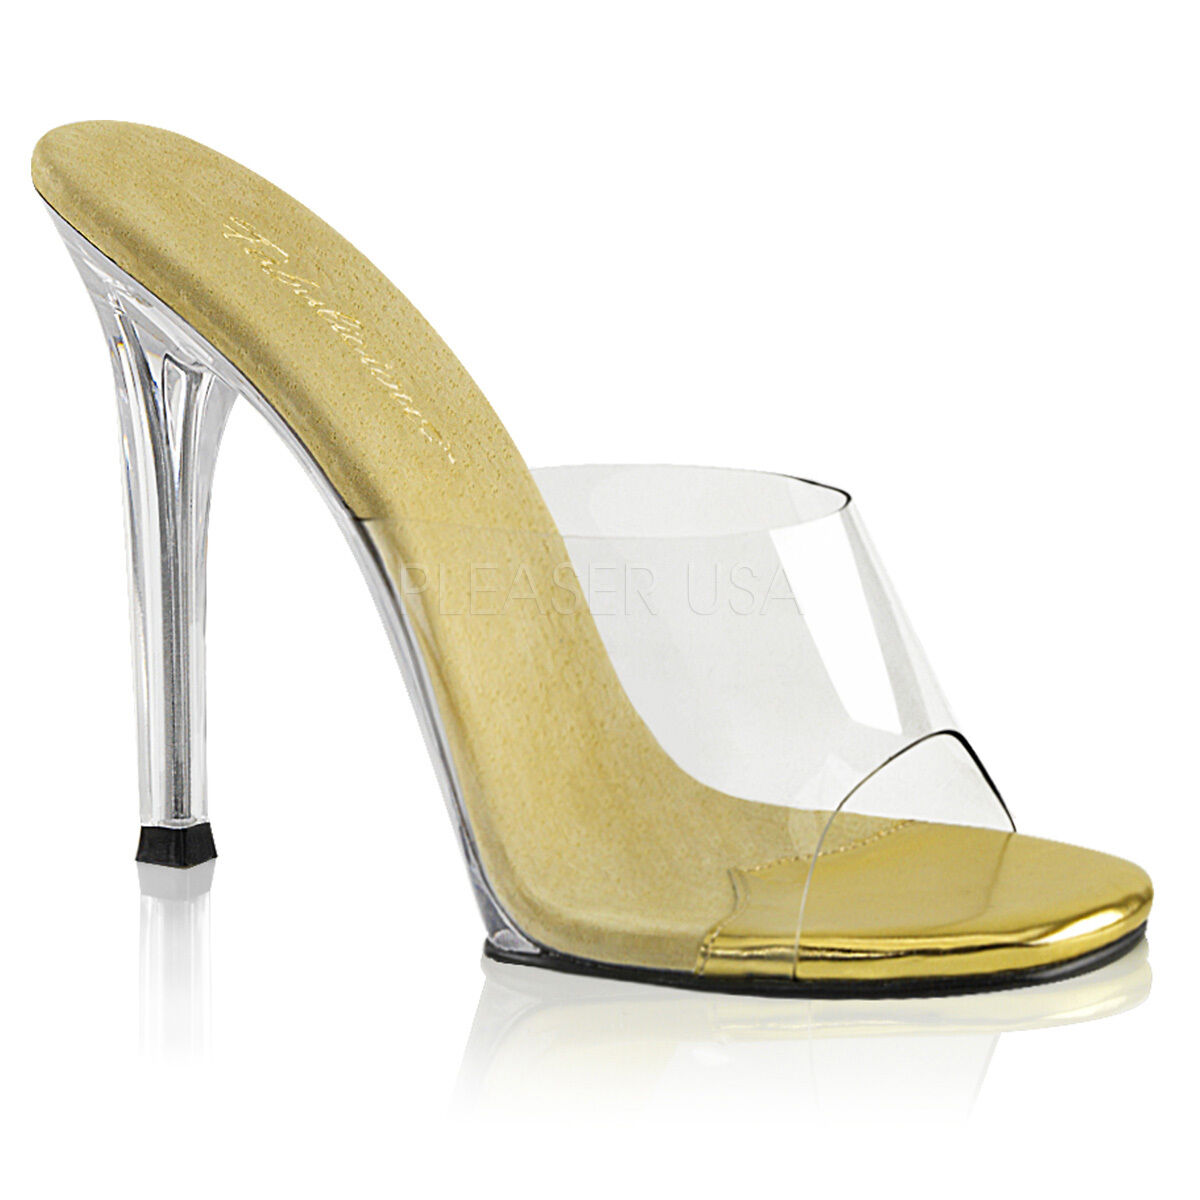 PLEASER Sexy shoes Pageant Slip On gold 4 1 2  High Heels Mules GALA01 C-G C